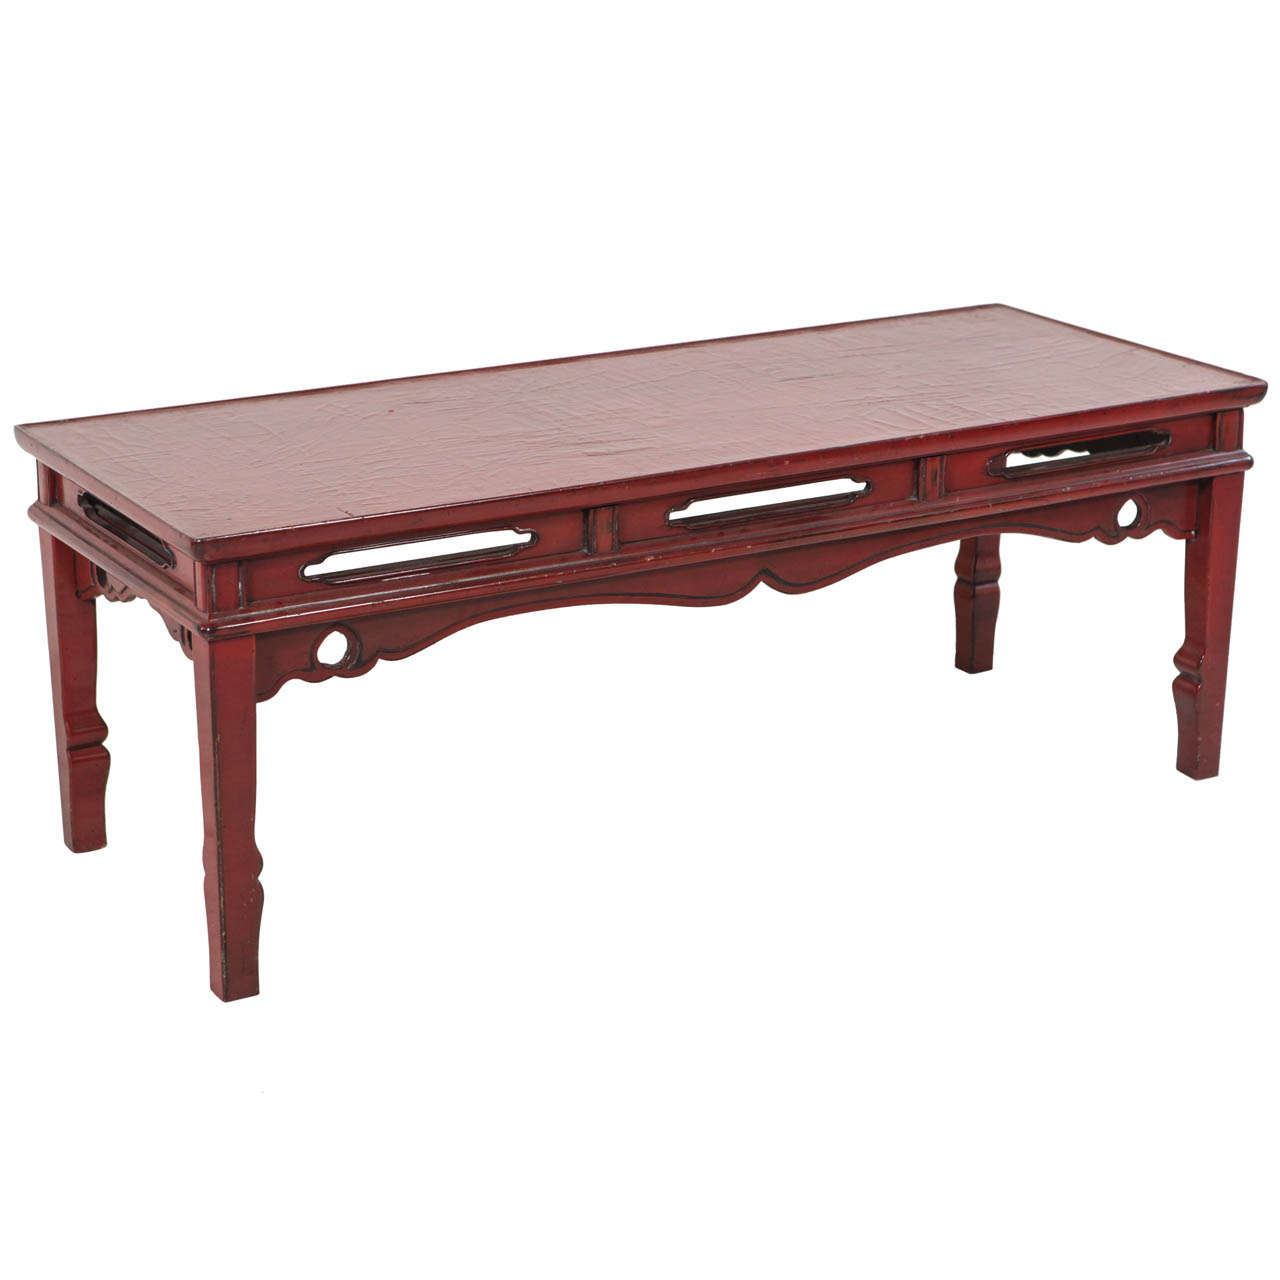 Red Lacquer Chinese Bench Coffee Table At 1stdibs